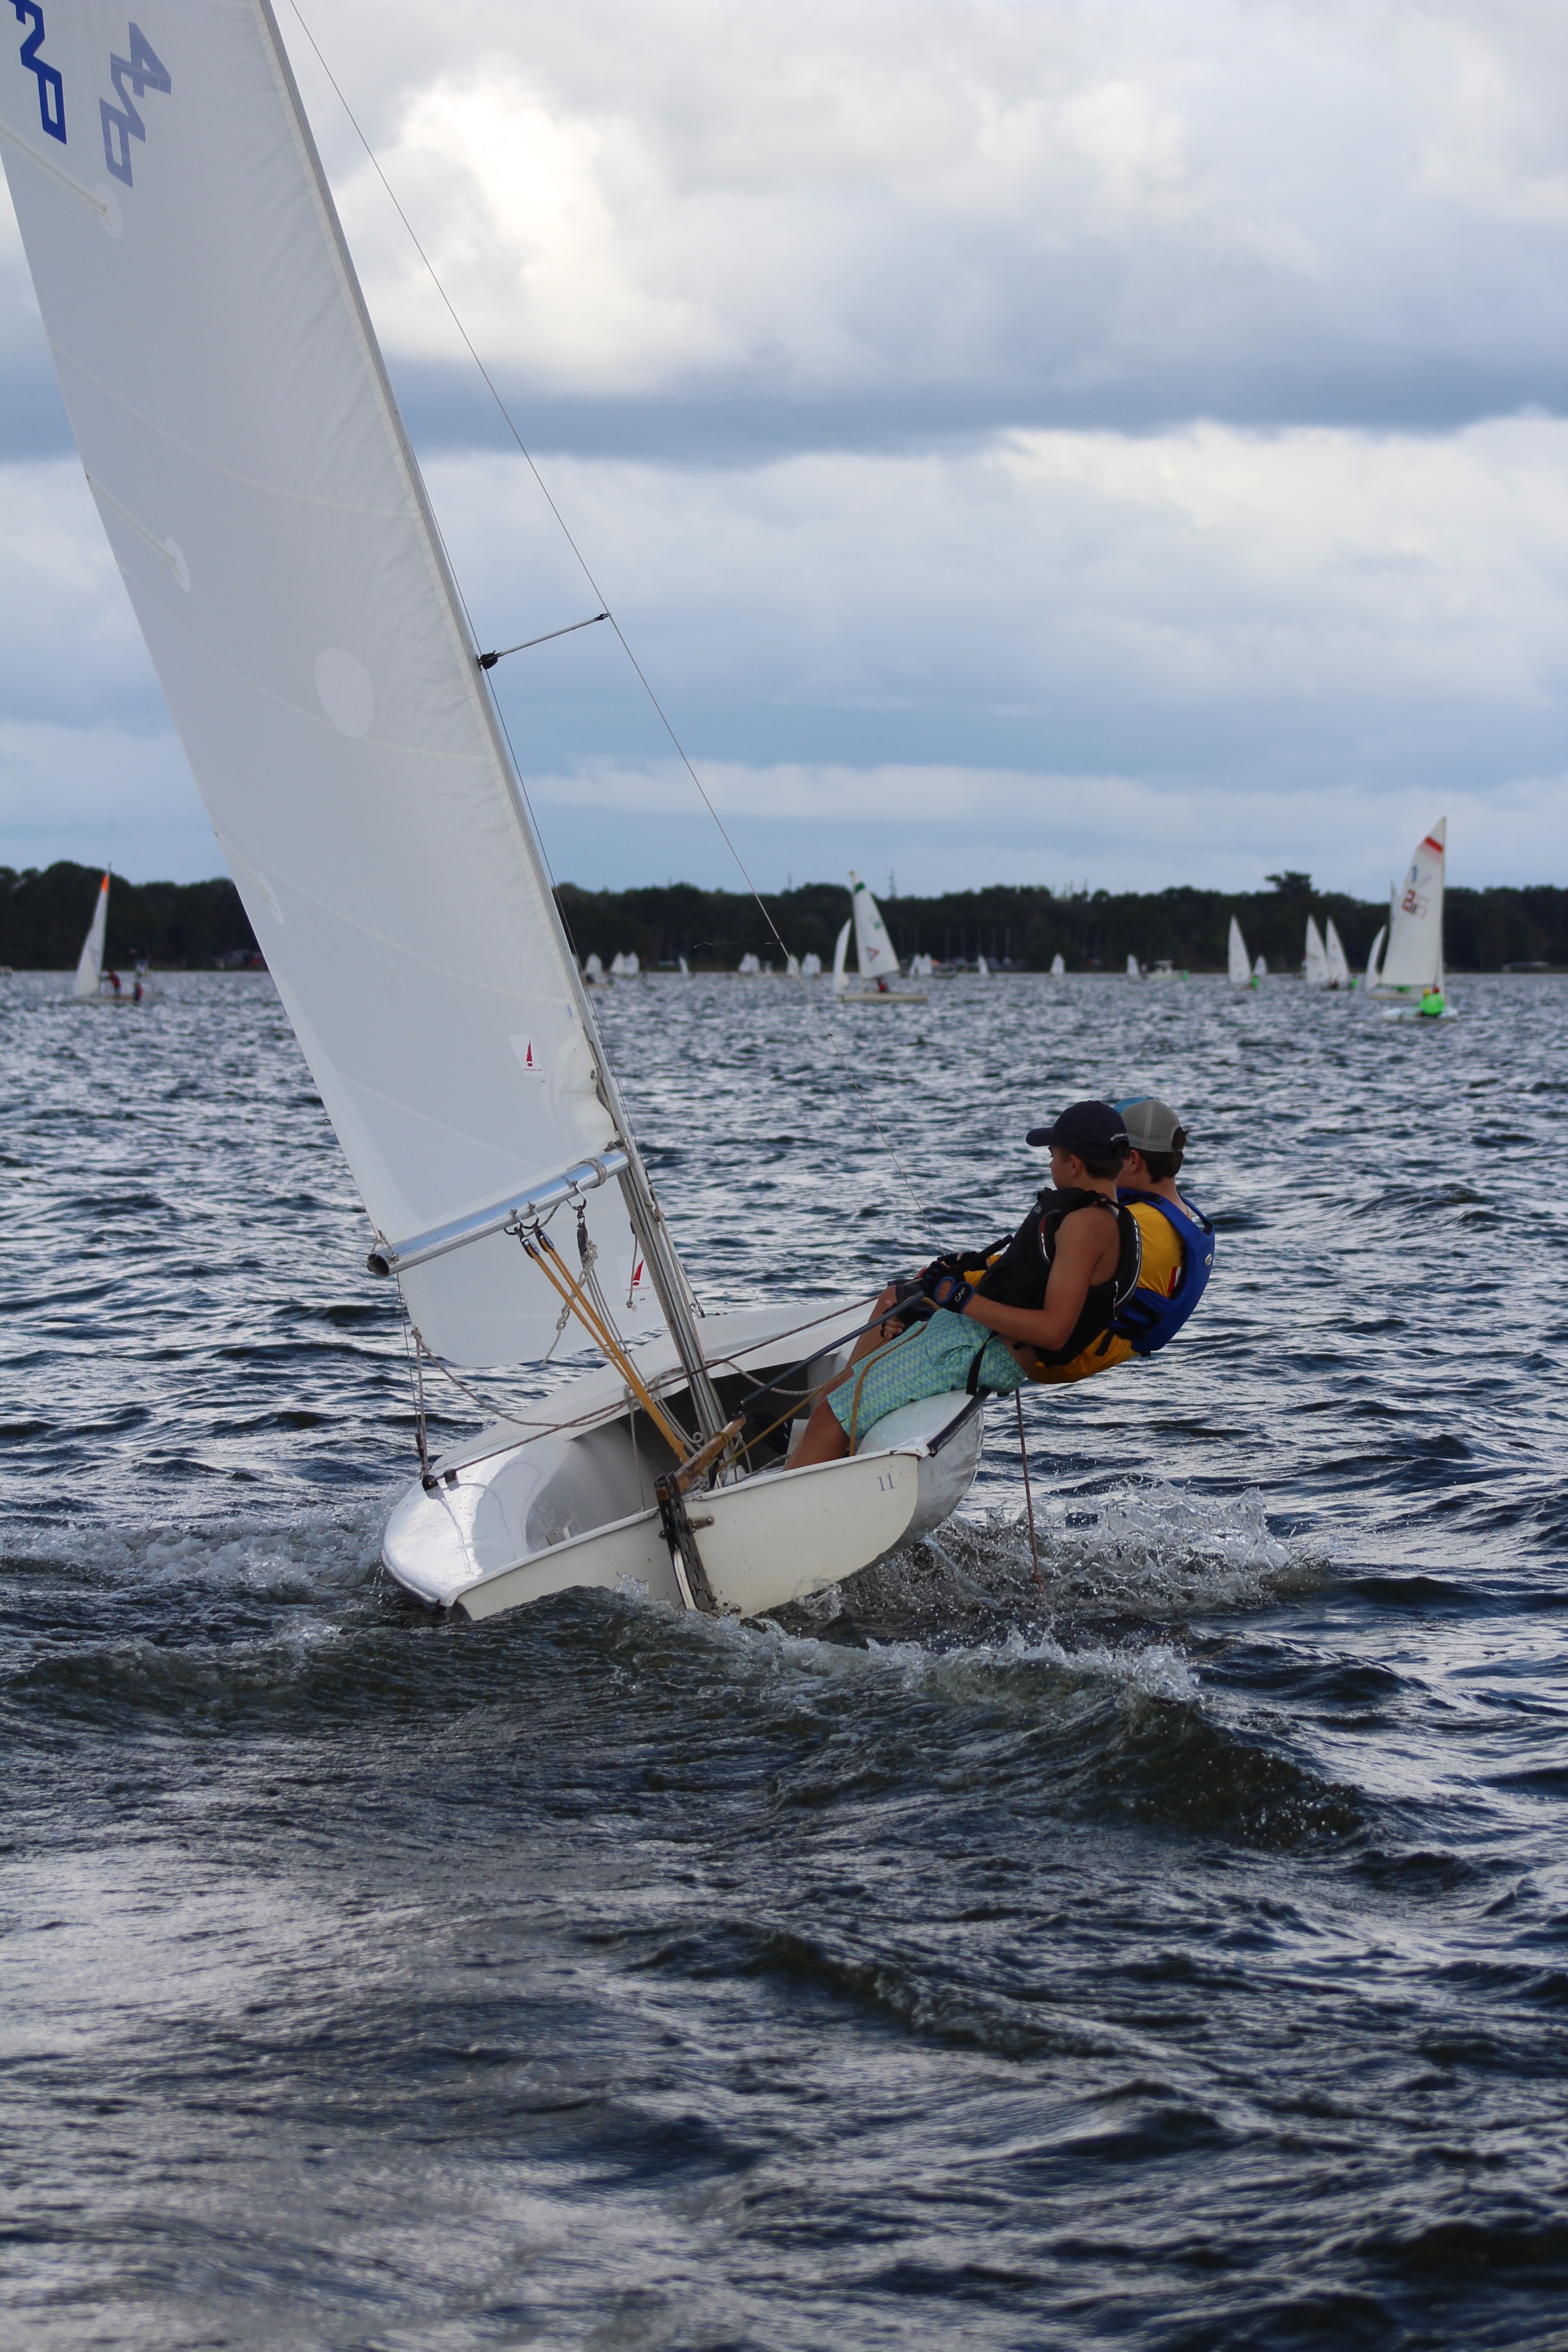 Two High School sailors on a 420, both leaning out to balance the boat.